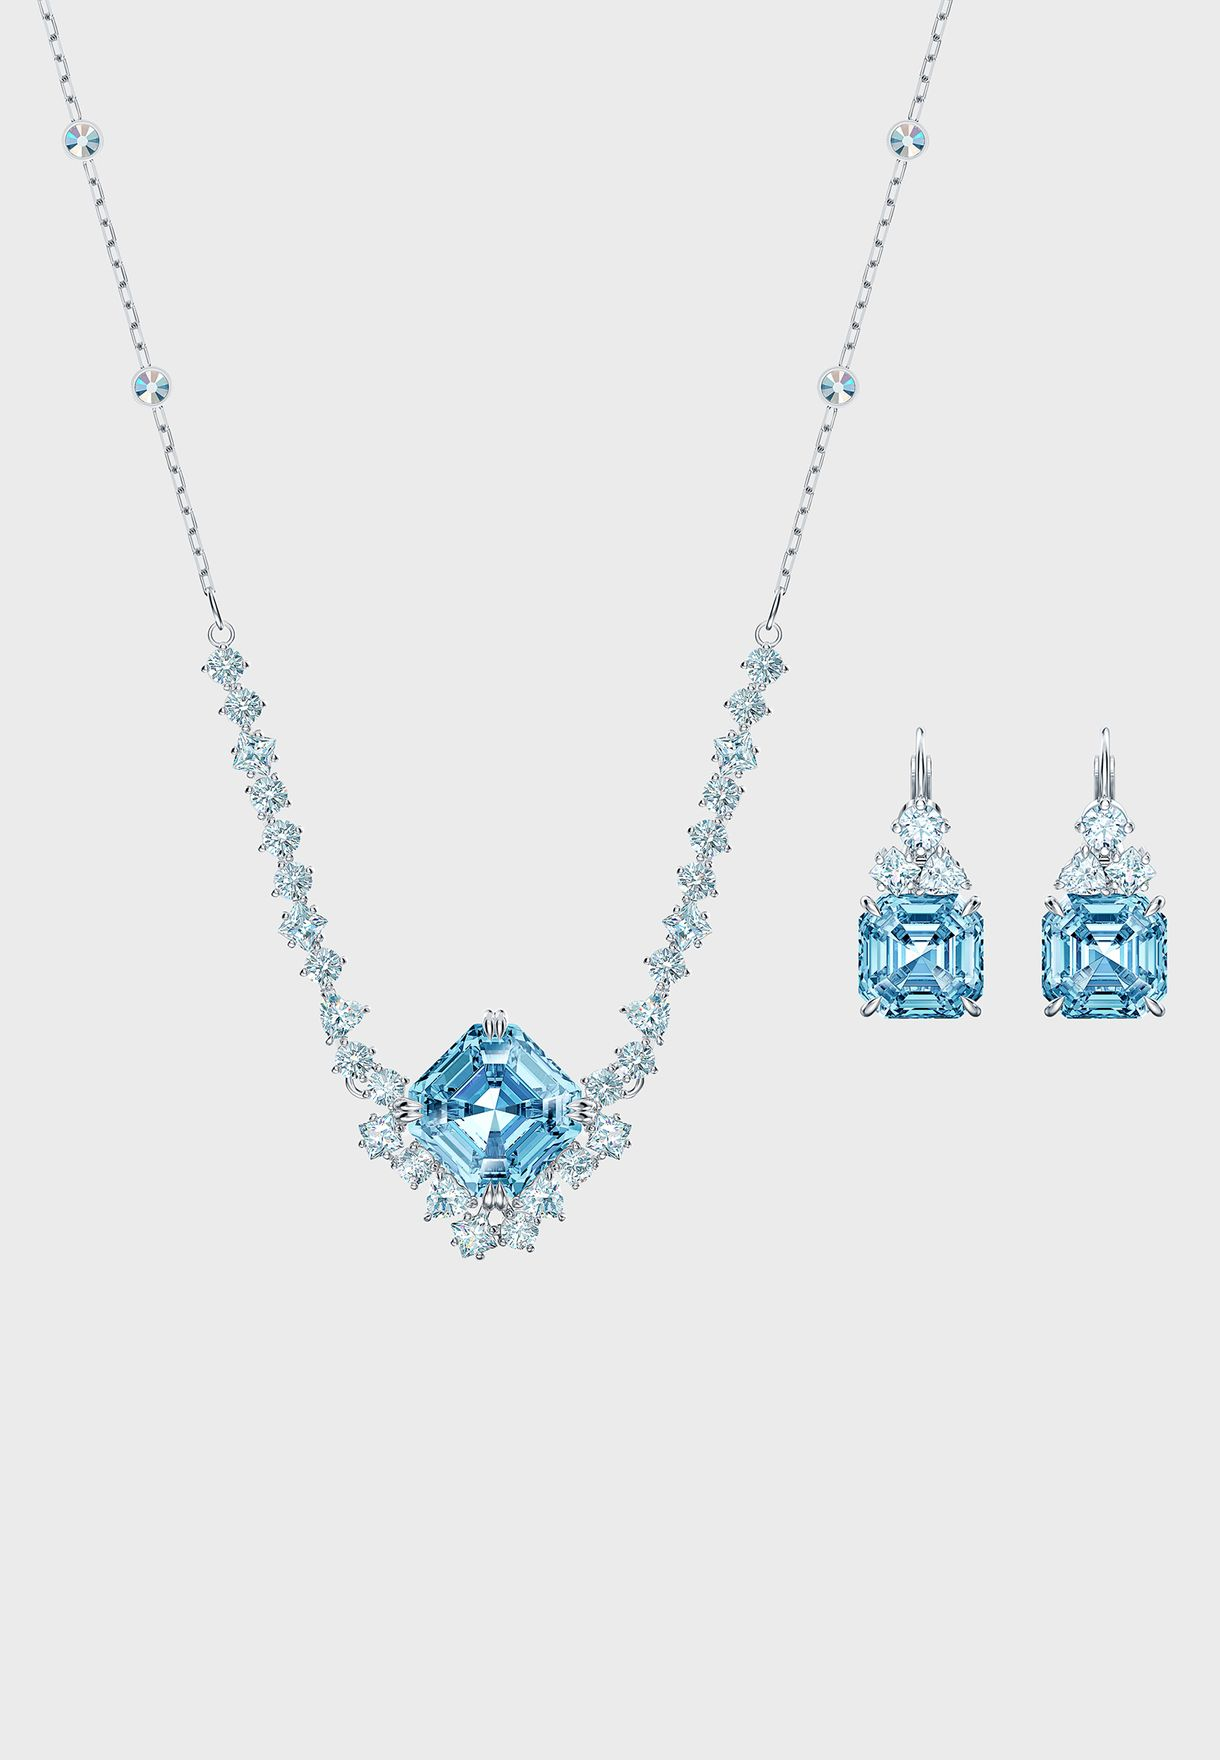 Sparkling Necklace+Earrings Set